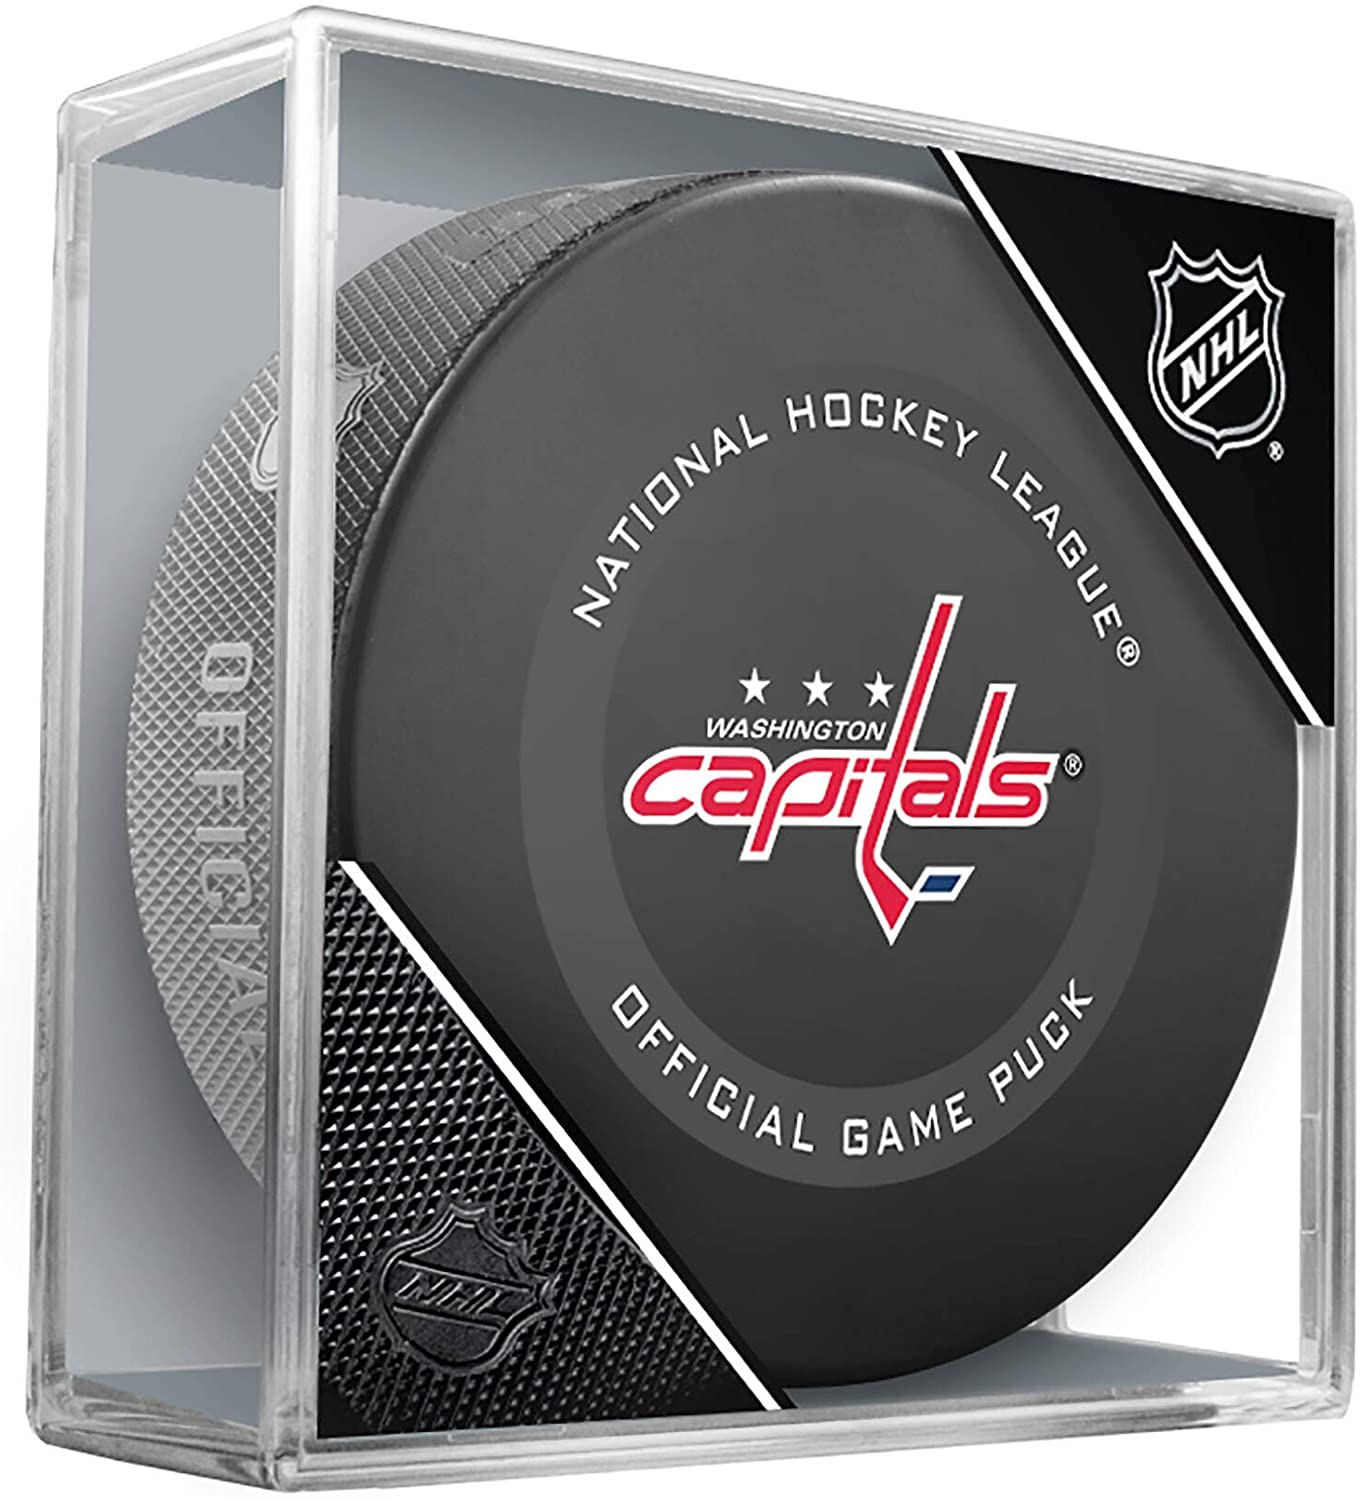 Washington Capitals Official Game Hockey Puck with Holder